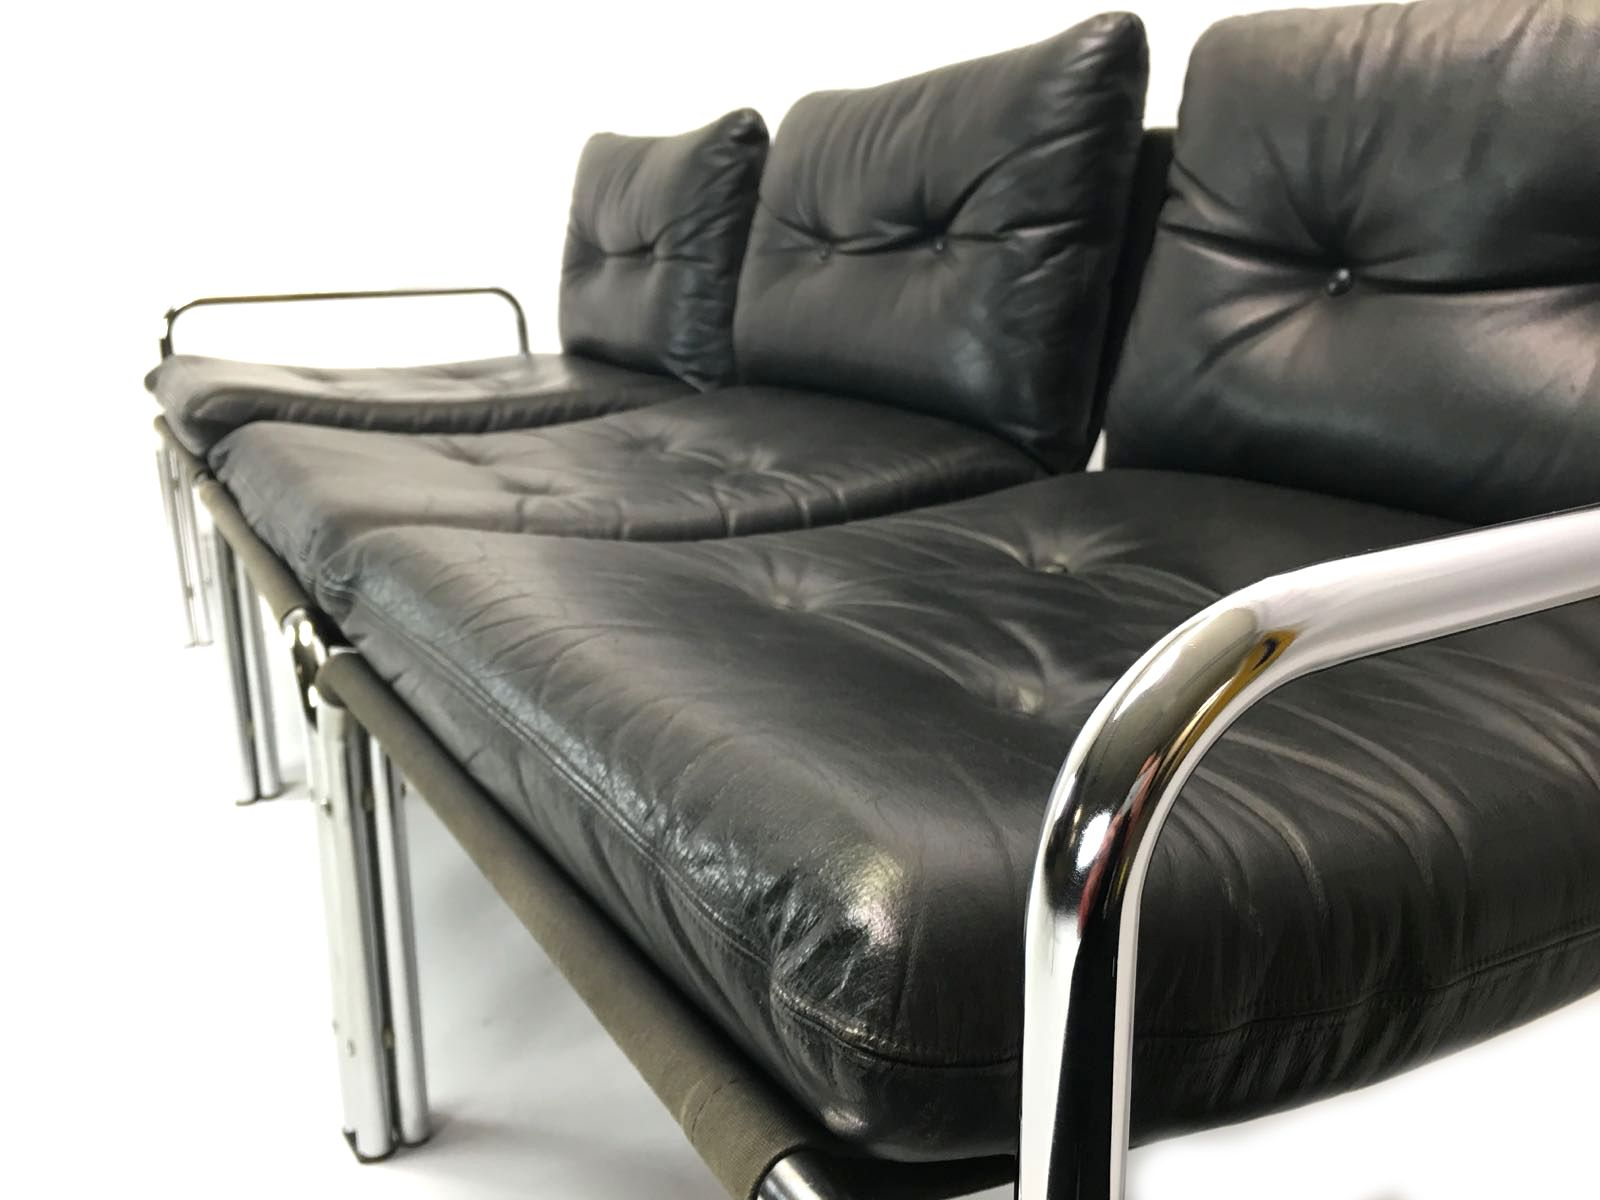 Leather Modular Sofa By Wim Ypma For Riemersma 1970s For Sale At Pamono